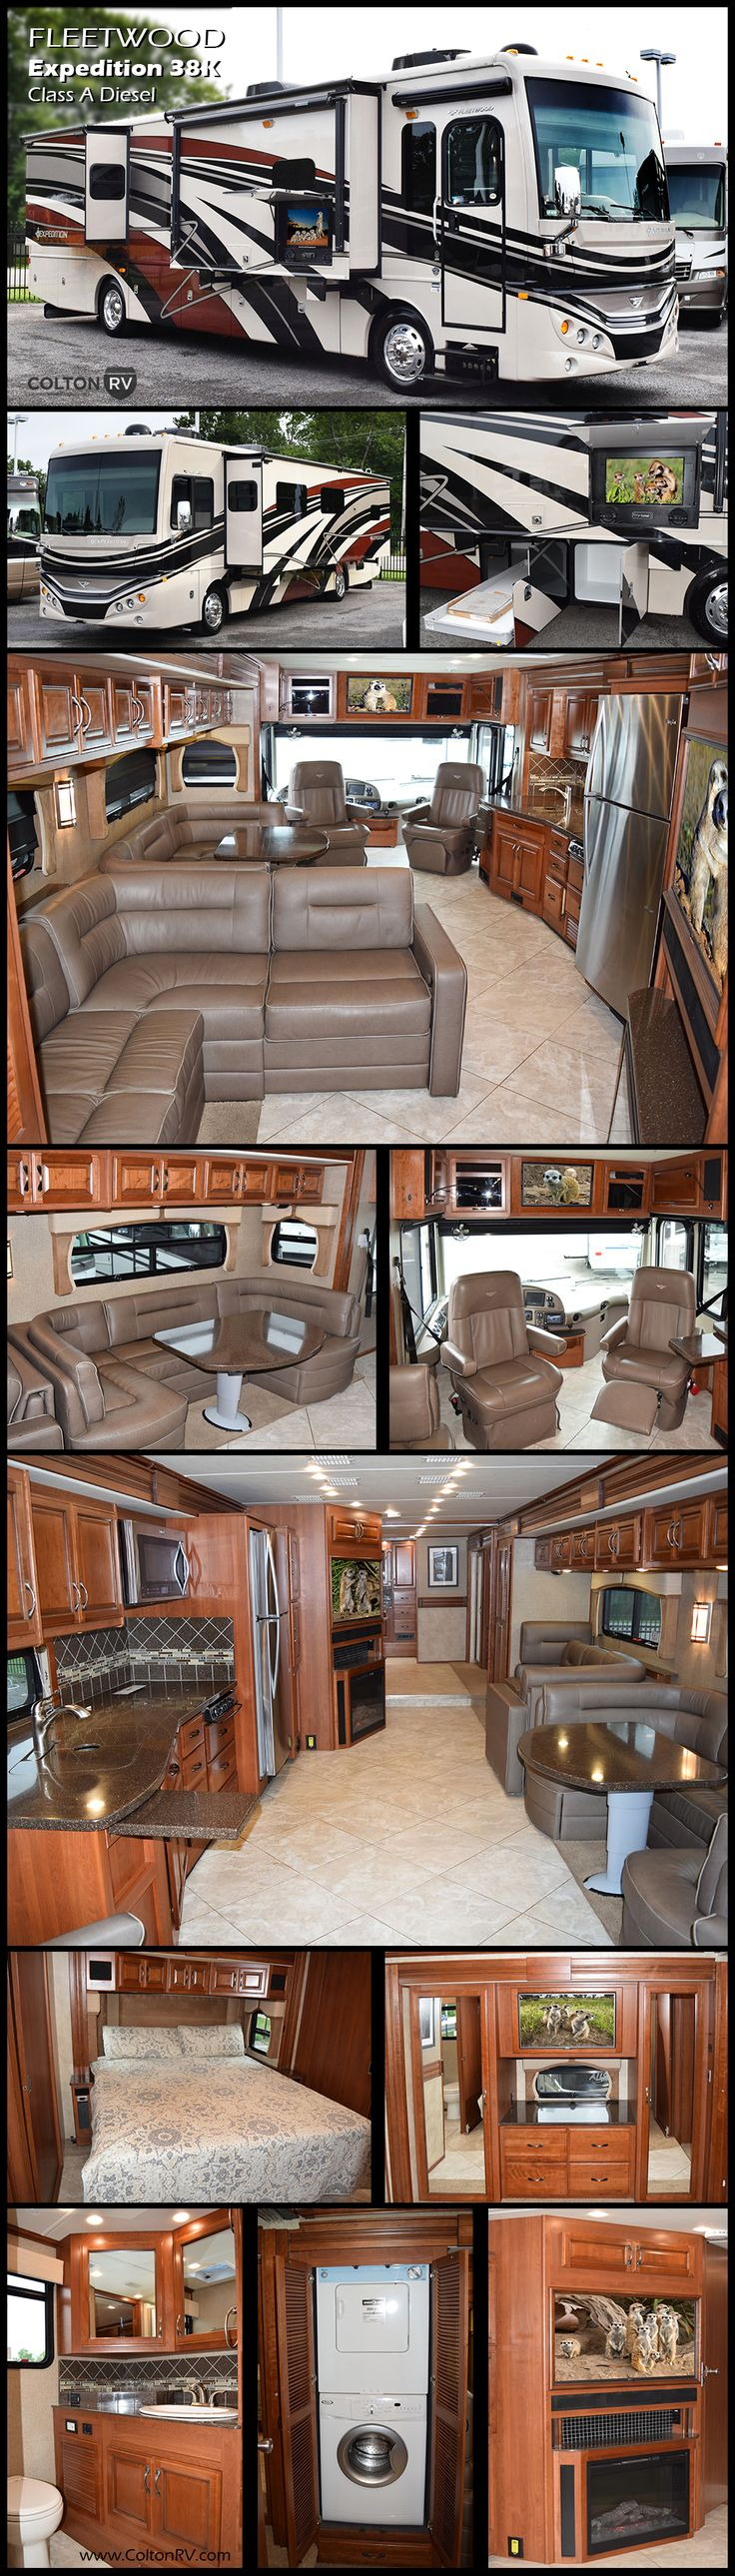 This spacious FLEETWOOD EXPEDITION 38K Class A Diesel Motorhome makes the adventure even grander. There's room to relax and generous storage space. This coach offers triples slides with one of the slides being a full wall slide. Let Expedition lead you down the road of relaxation with its thoughtful amenities, comfortable interior and all-around beauty